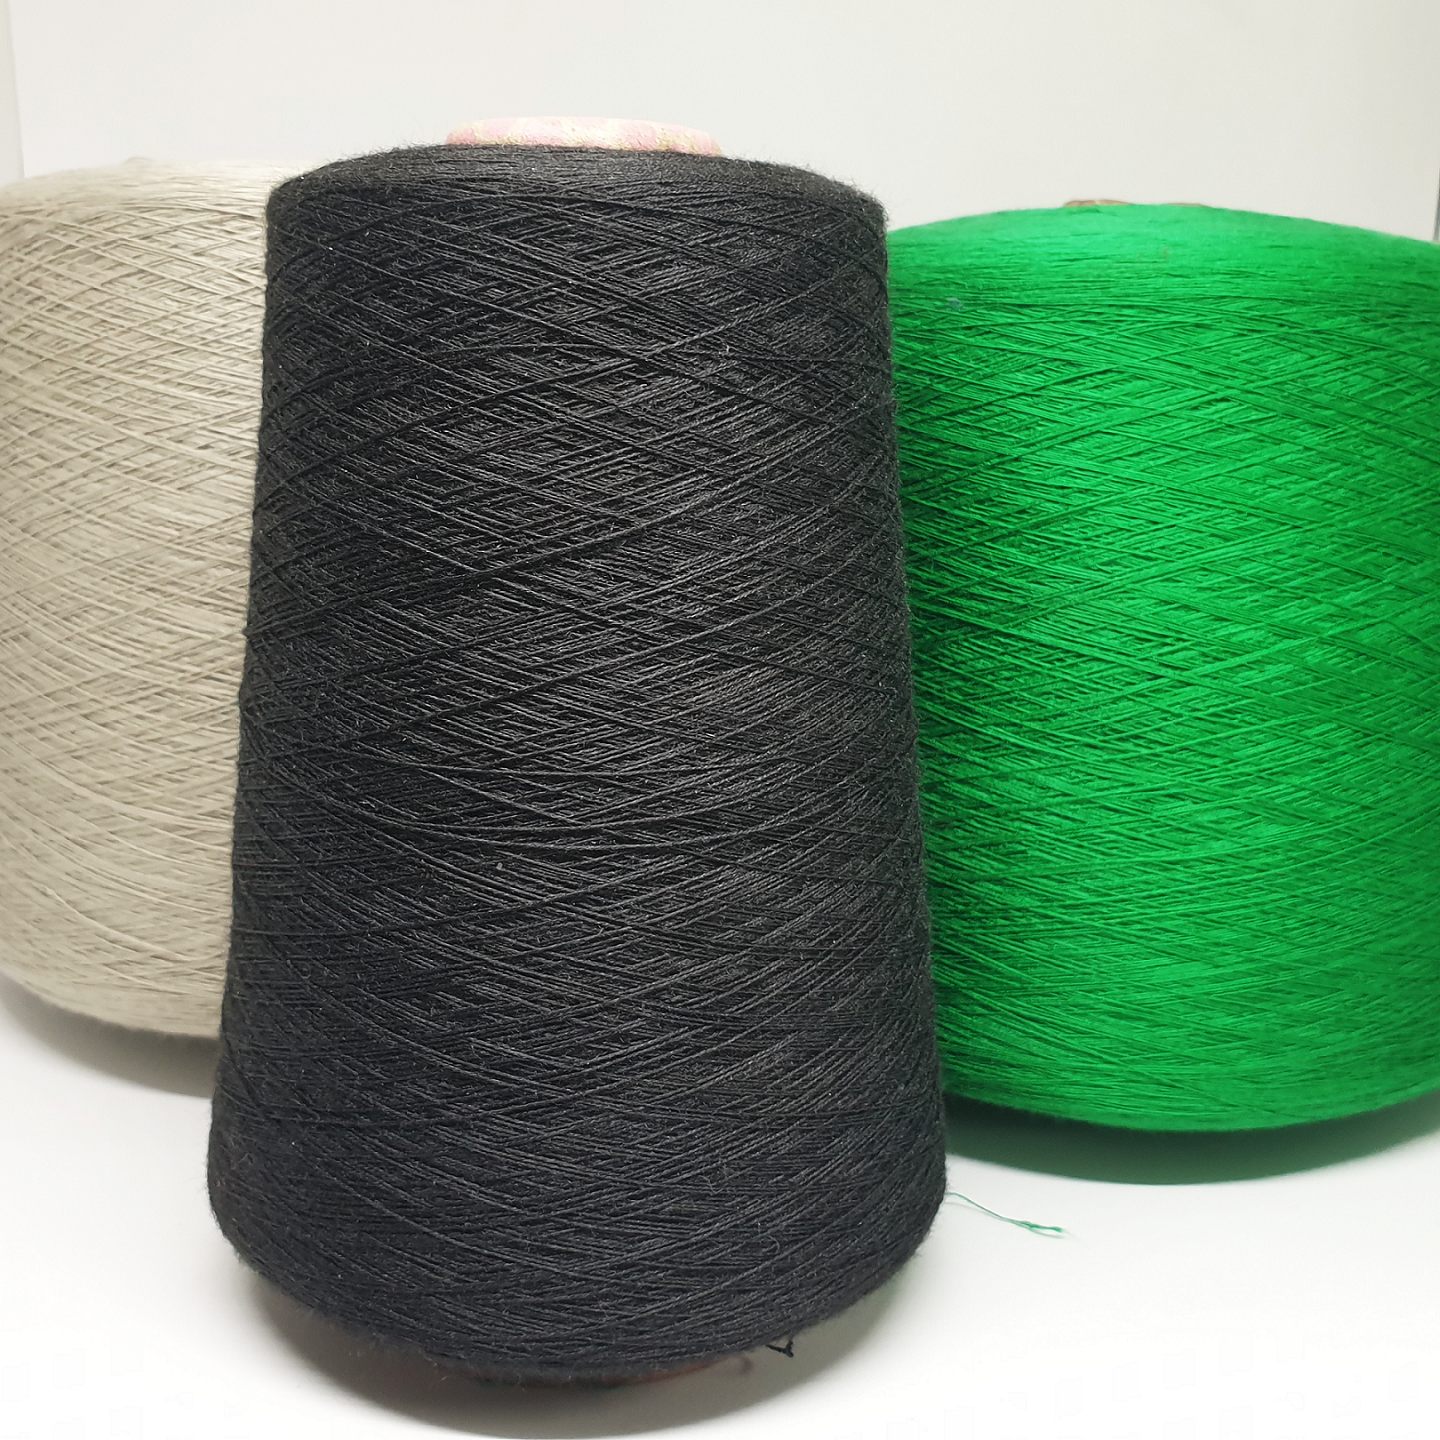 Fire retardant Meta Aramid yarn for knitting